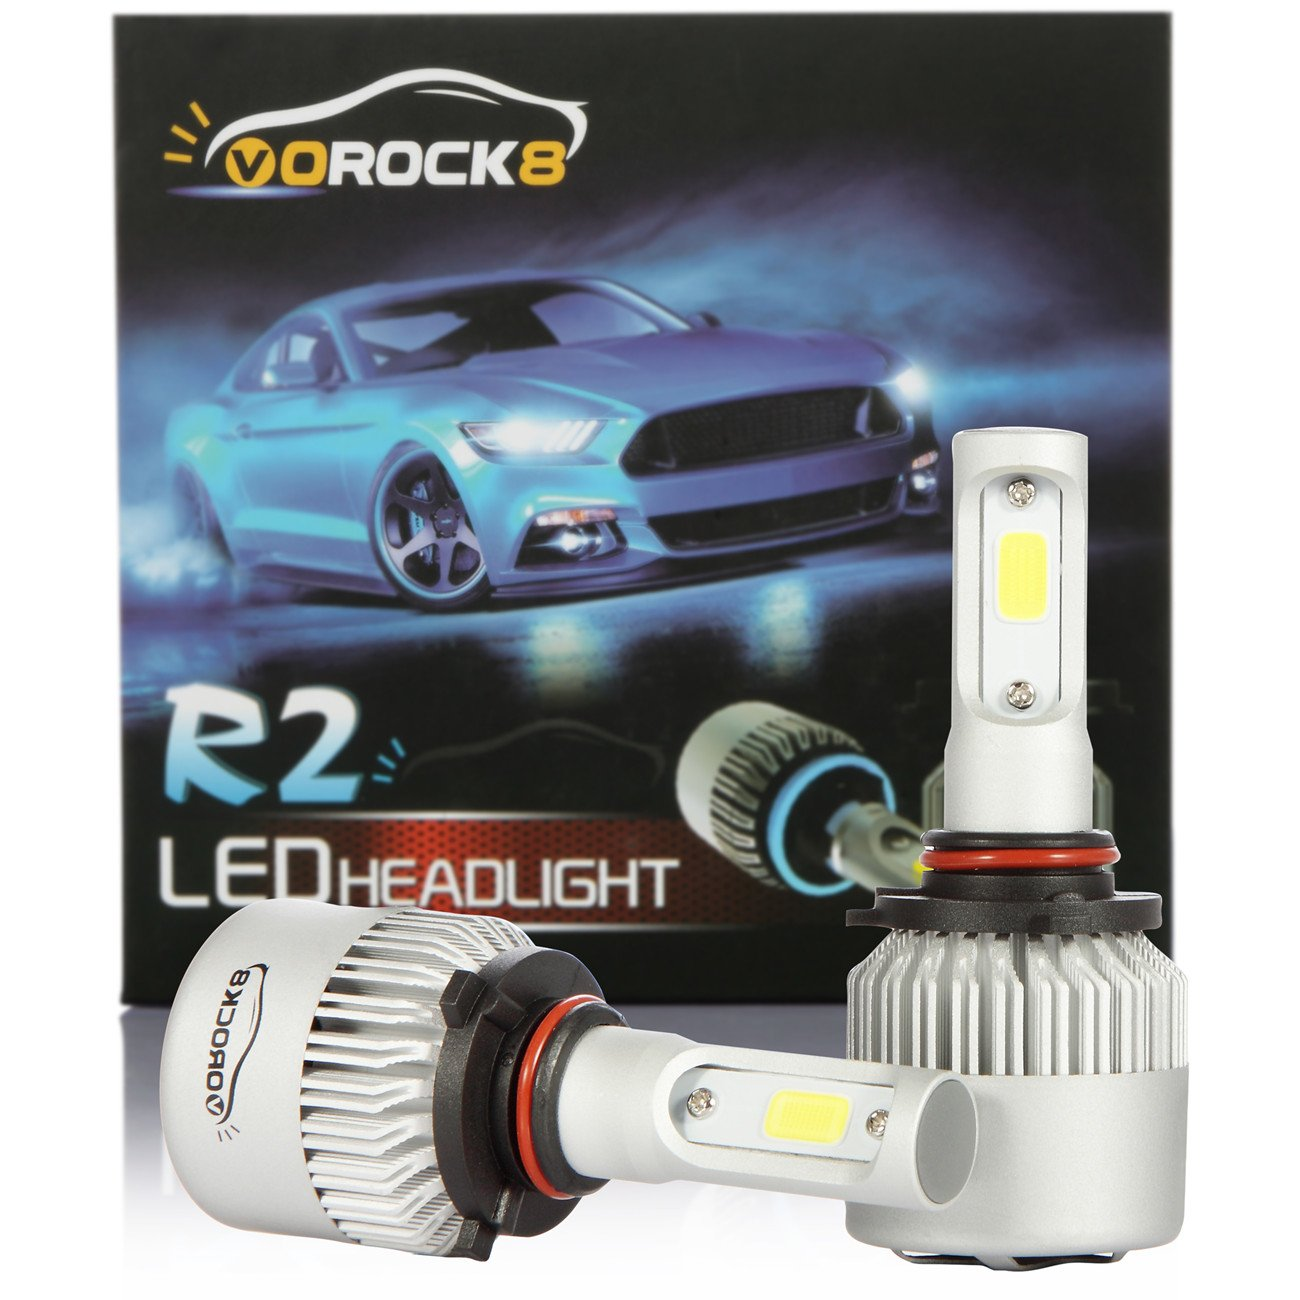 vorock led light